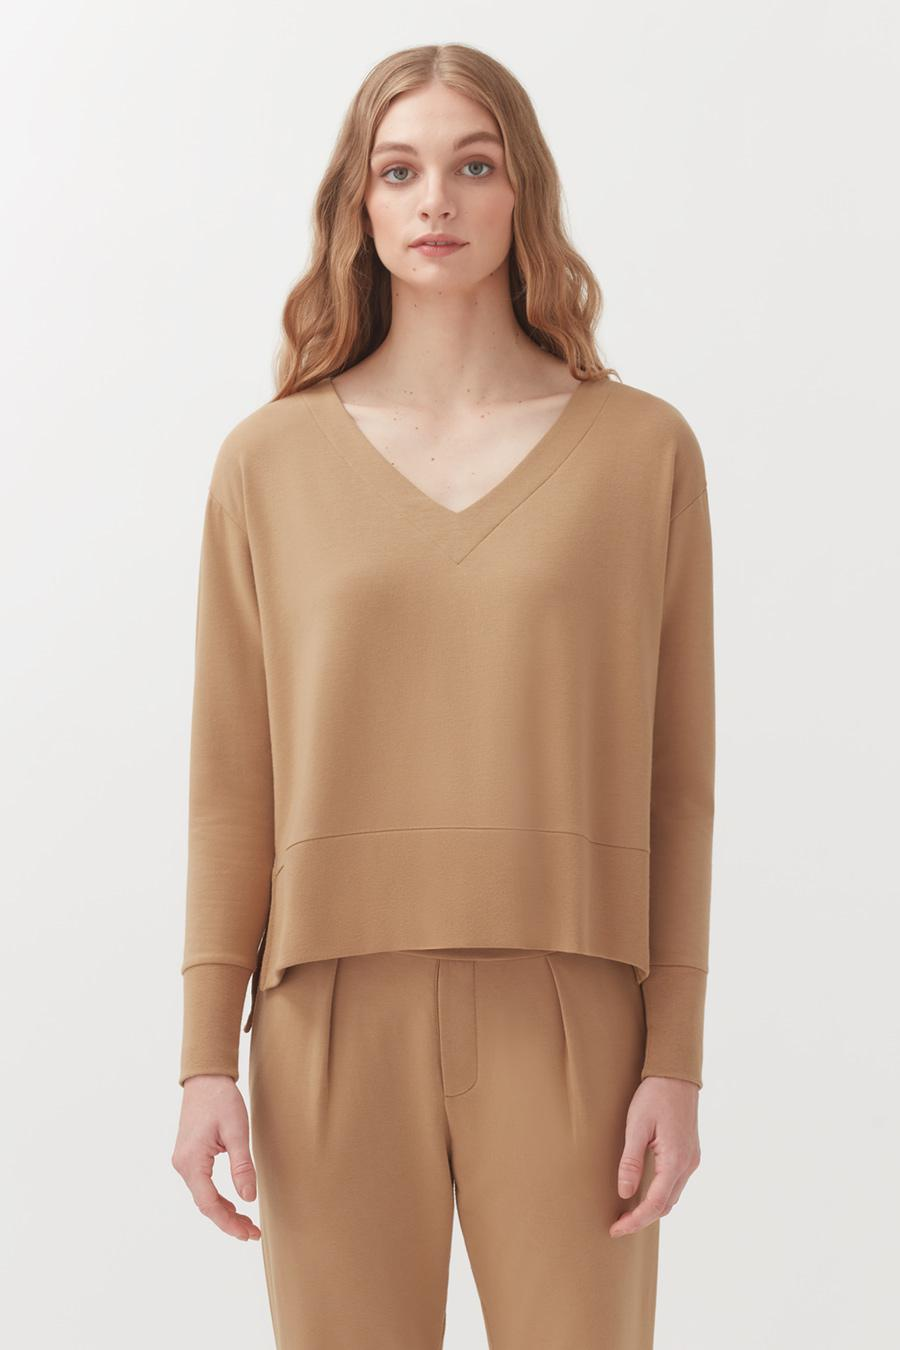 Women's French Terry V-Neck Sweatshirt in Camel | Size: 1